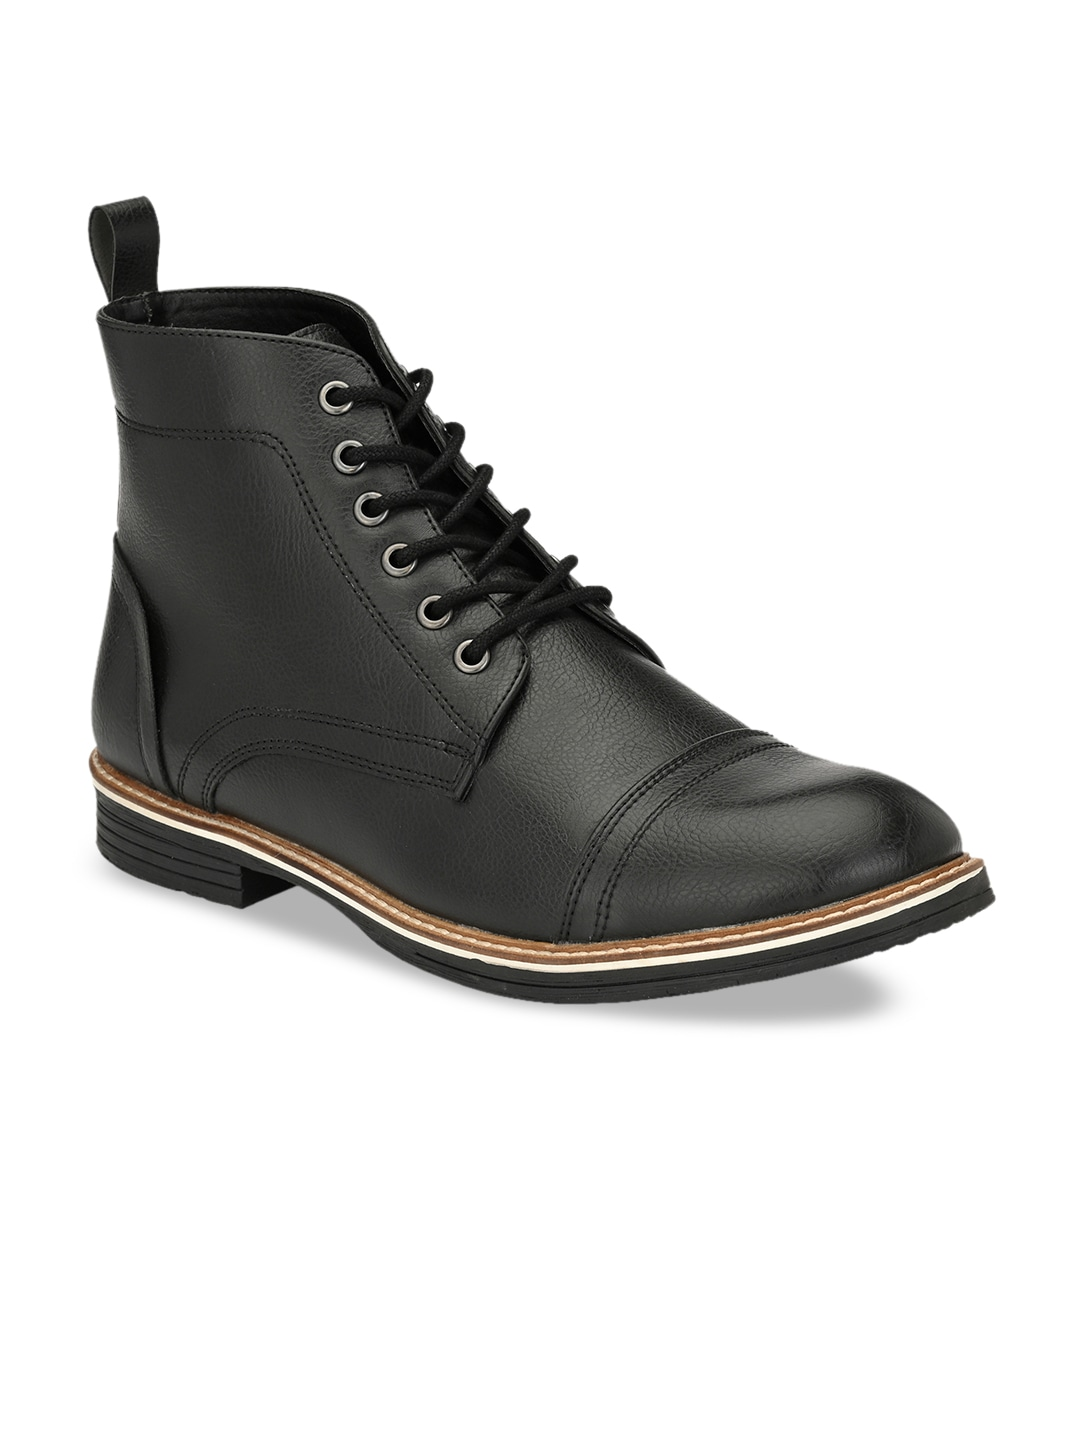 Black Solid Synthetic Leather Lightweight High-Top Flat Boots